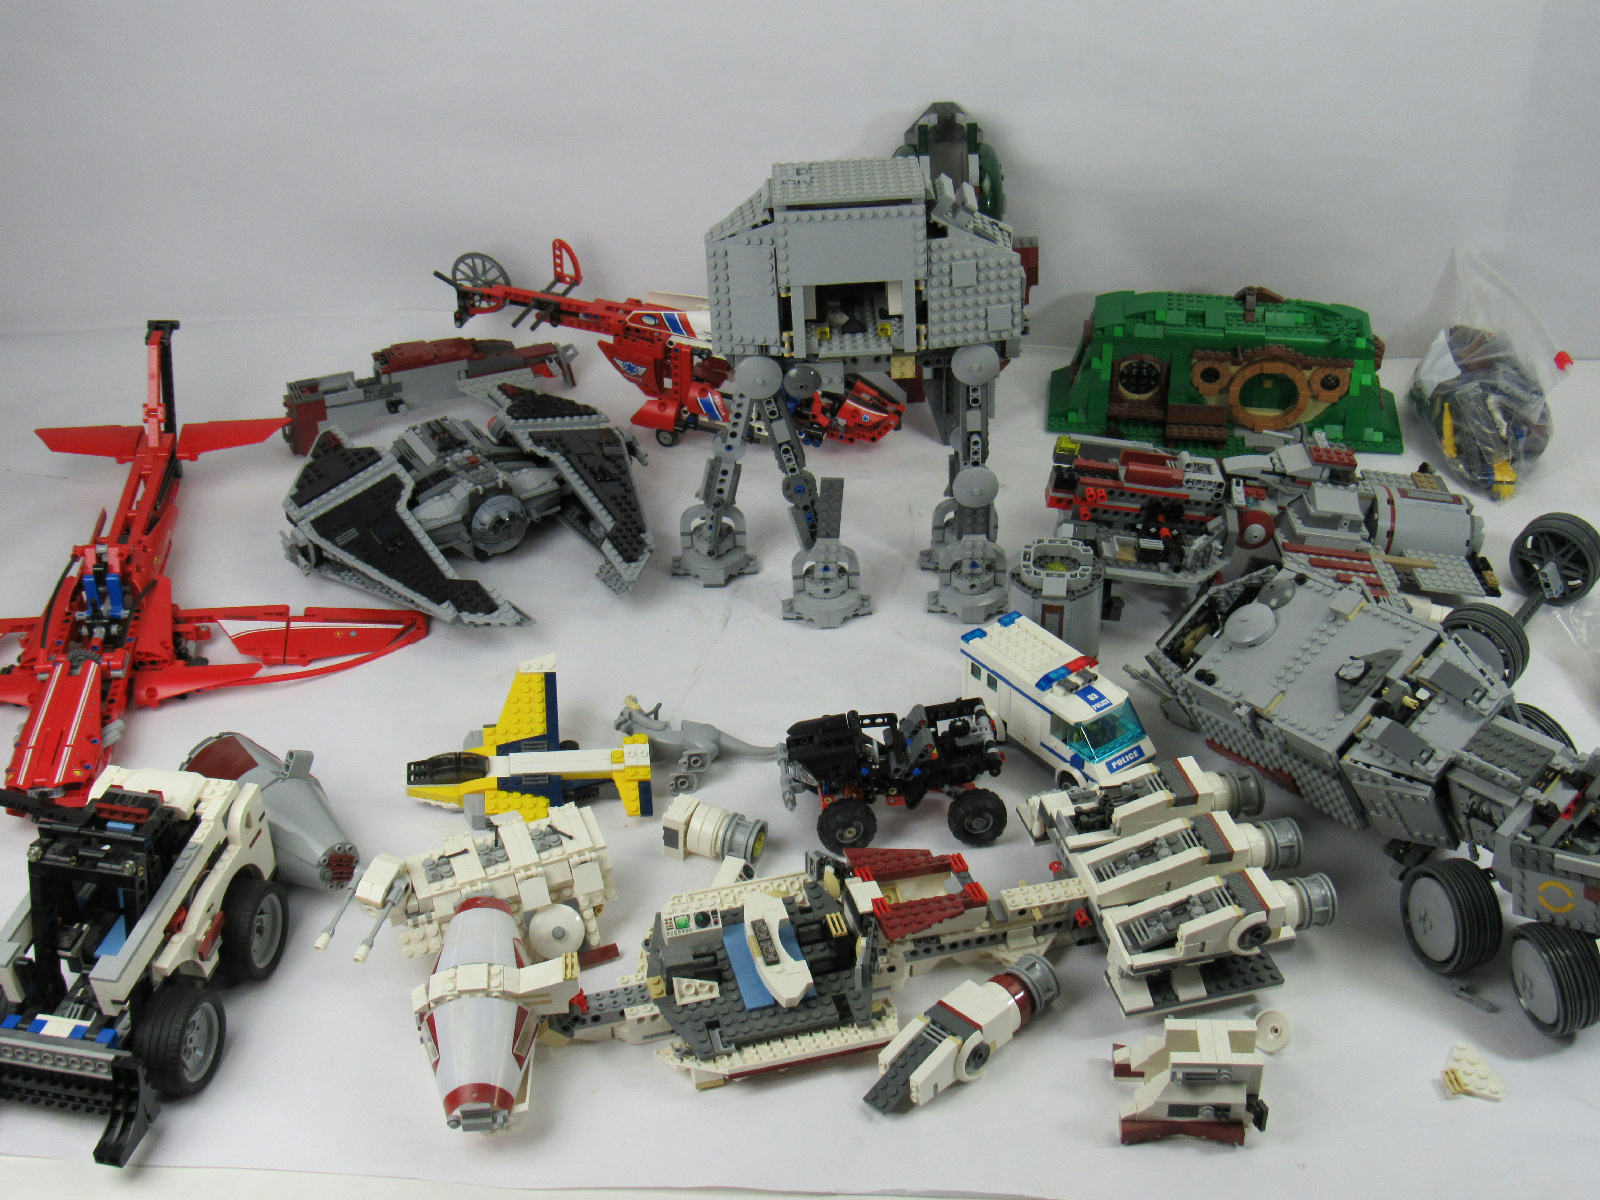 legos helicopter with 222354689726 on Bonus Acheter Les Jeux De Construction Lego Jurassic World Au Meilleur as well 2014 Lego City Police Town Sets likewise Walkthrough Lego Jurassic World Storyline Jurassic Park 2 The Lost World besides Watch also Second Half 2hy 2016 Lego Catalogue June December.